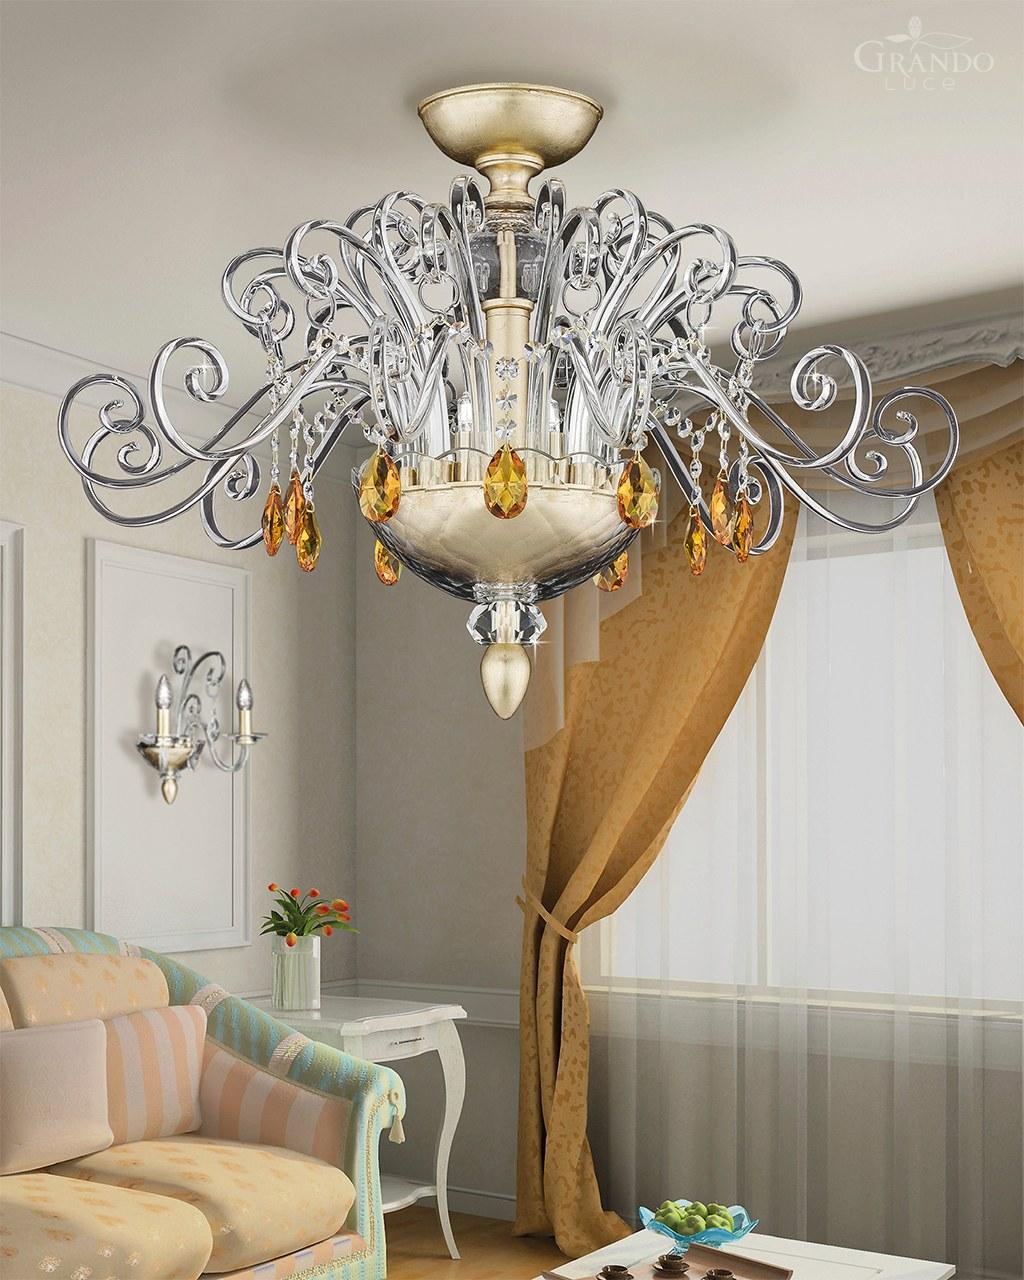 All White With Gold Leaf Ceiling And Degournay Coco: 120/PLM Gold Leaf Crystal Ceiling Lamp With Crystal